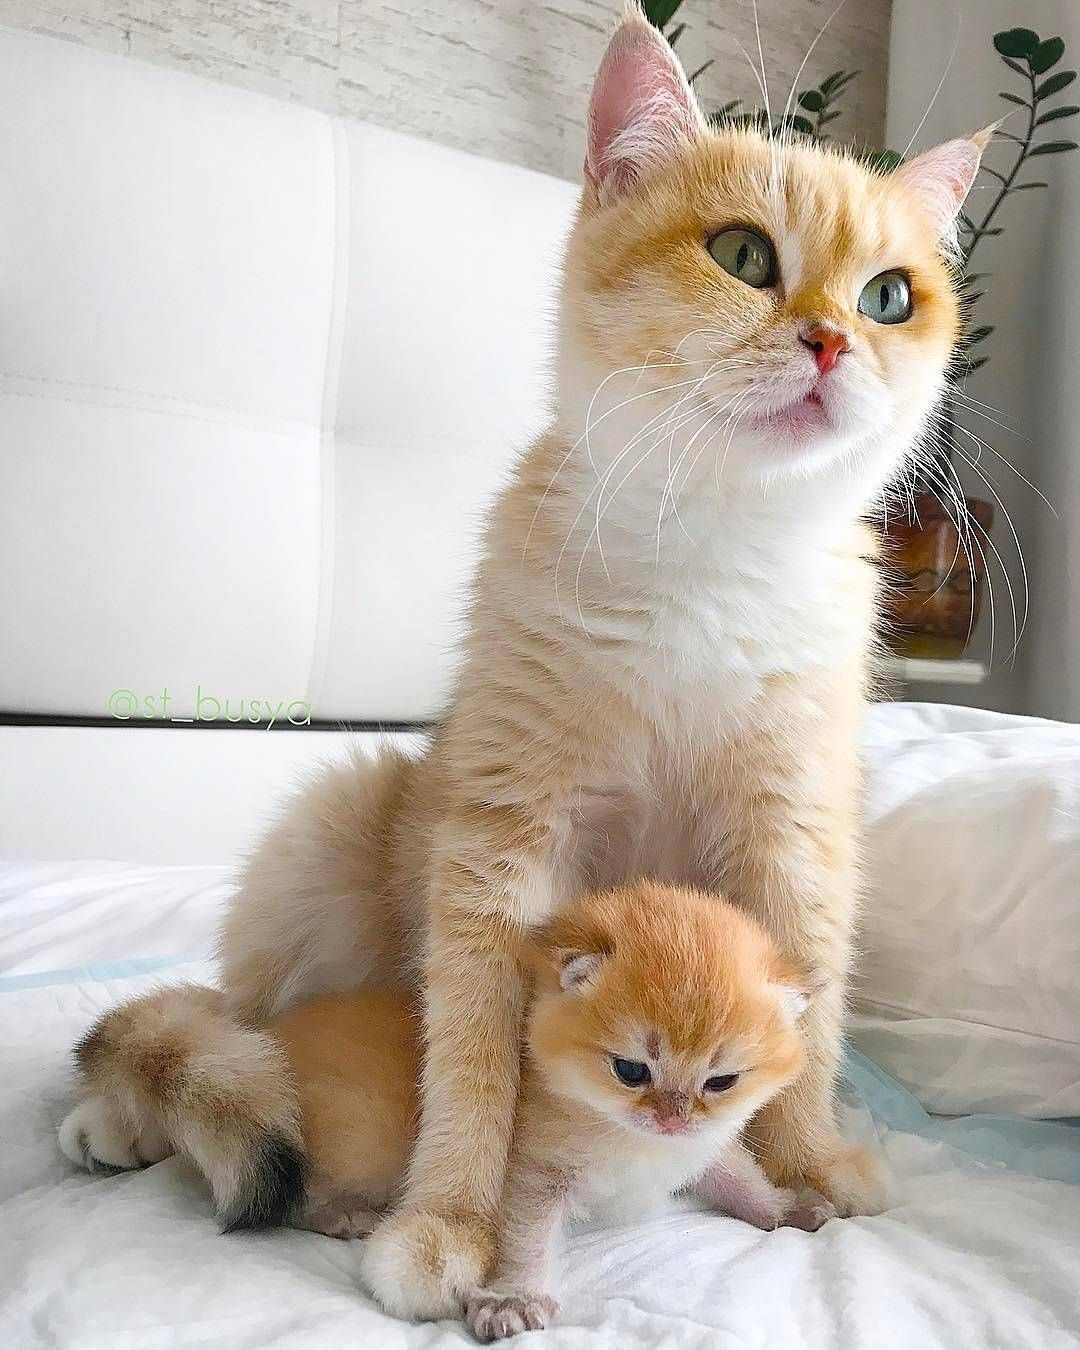 Please Don T Breed Or Buy While Shelter Animals Die Always Adopt Never Shop And Please Support Your Local Shelters Kittens Cutest Cute Cats Cute Cats Photos